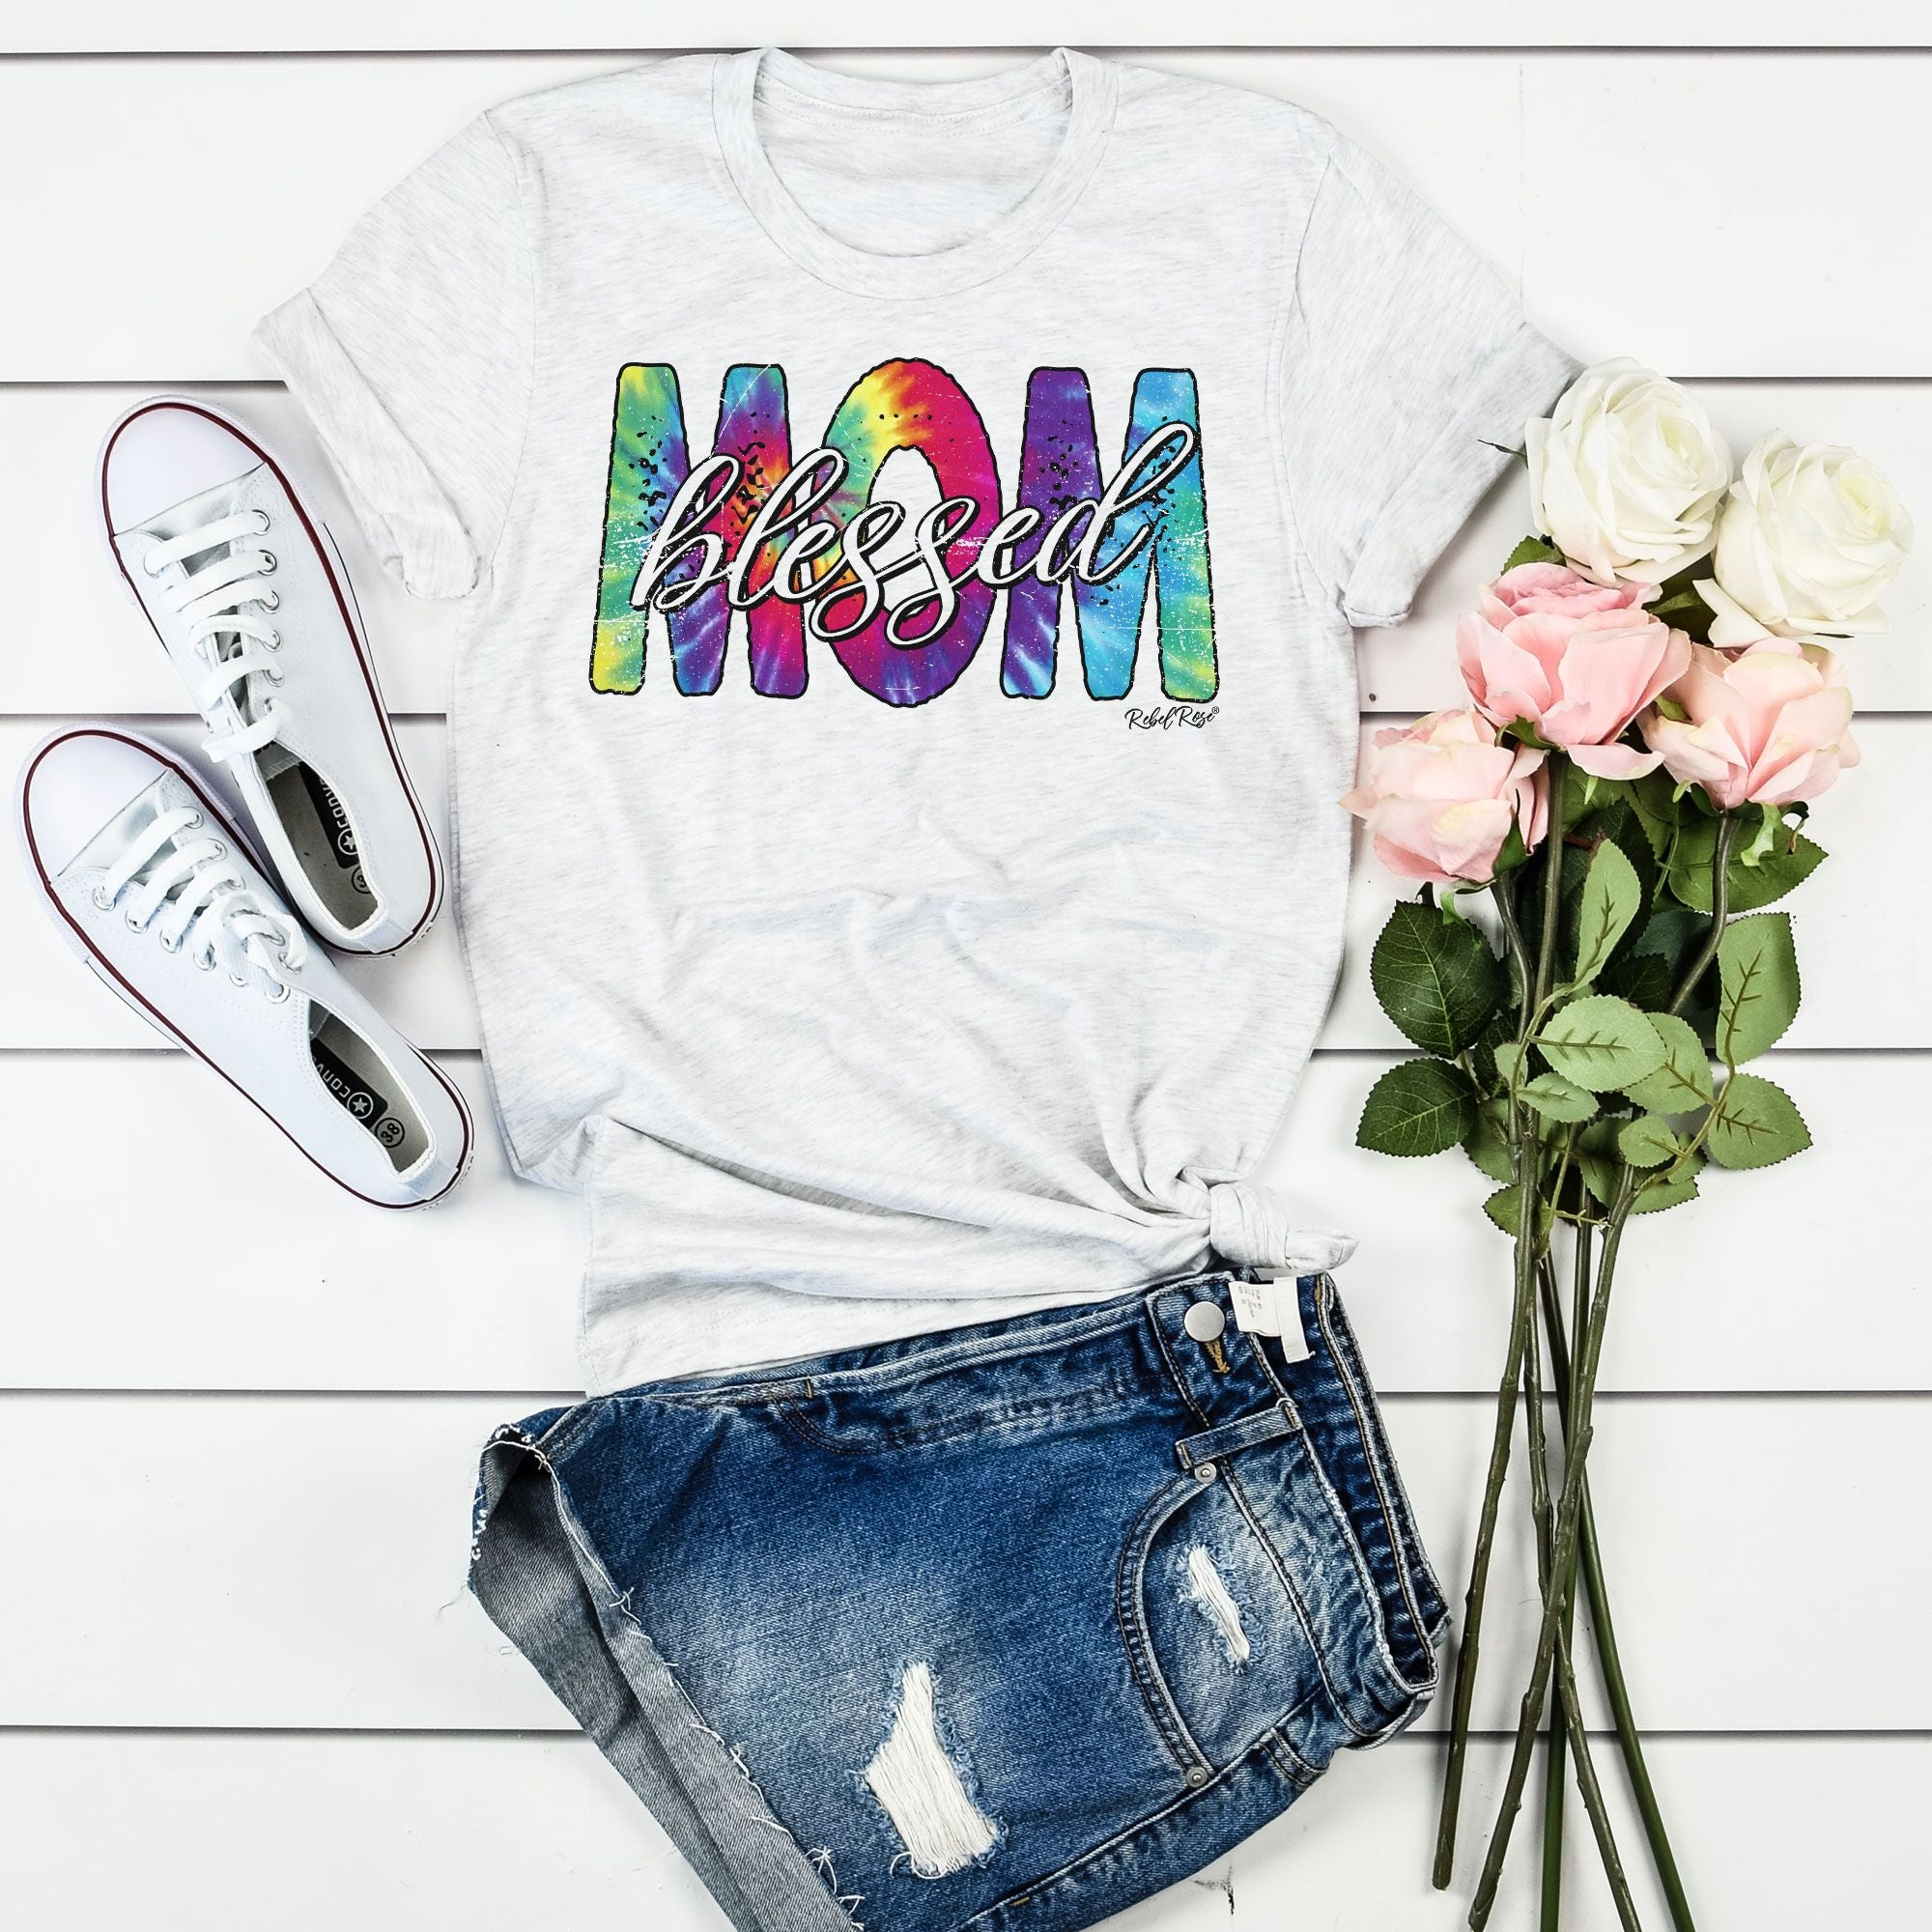 Tie Dye Blessed Mom on Ash Grey